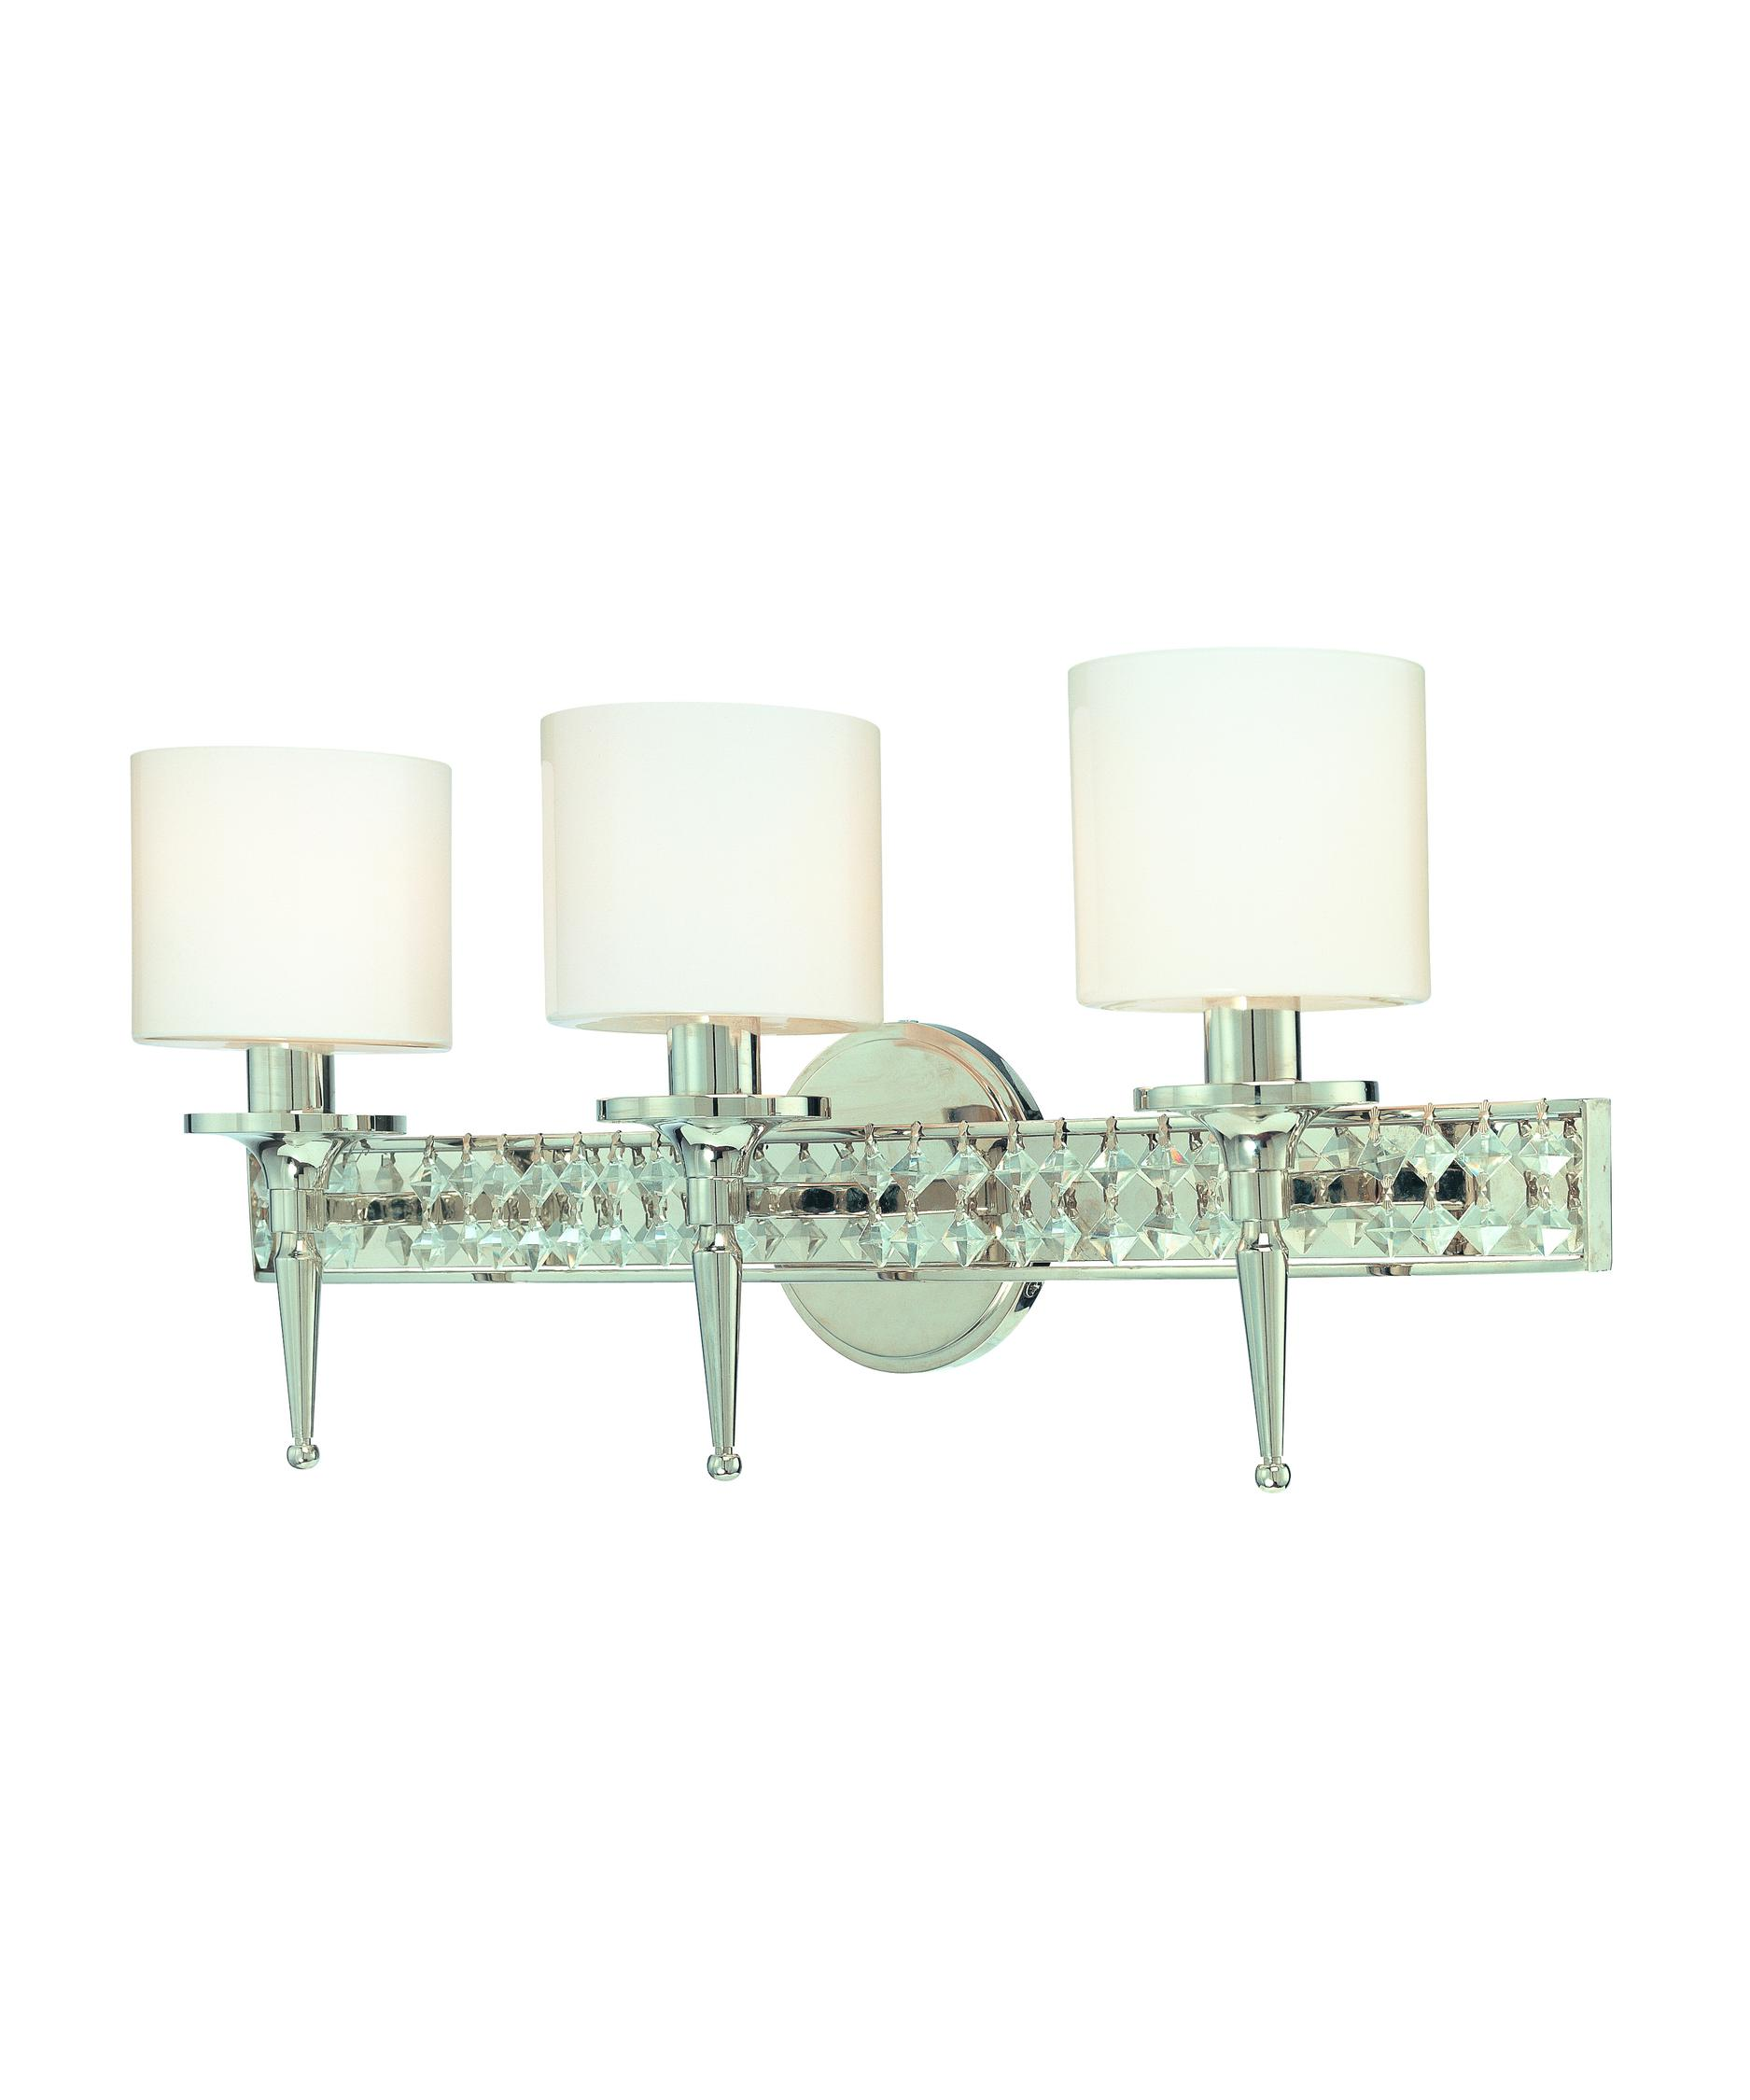 Bathroom Vanity Lights On Sale troy lighting b1923 collins 24 inch wide bath vanity light